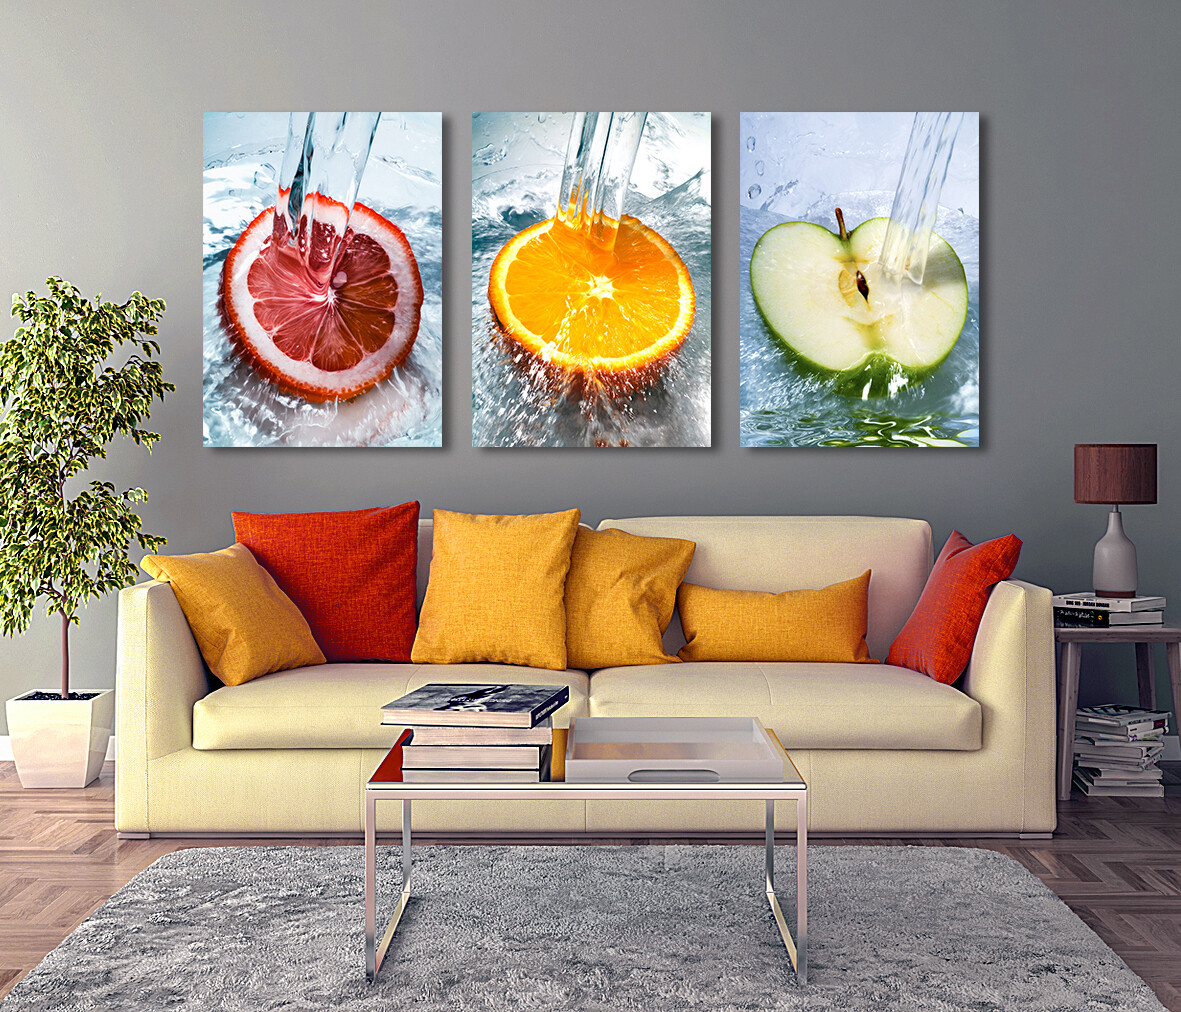 Fresh Fruits  - Modern Luxury Wall art Printed on Acrylic Glass - Frameless and Ready to Hang